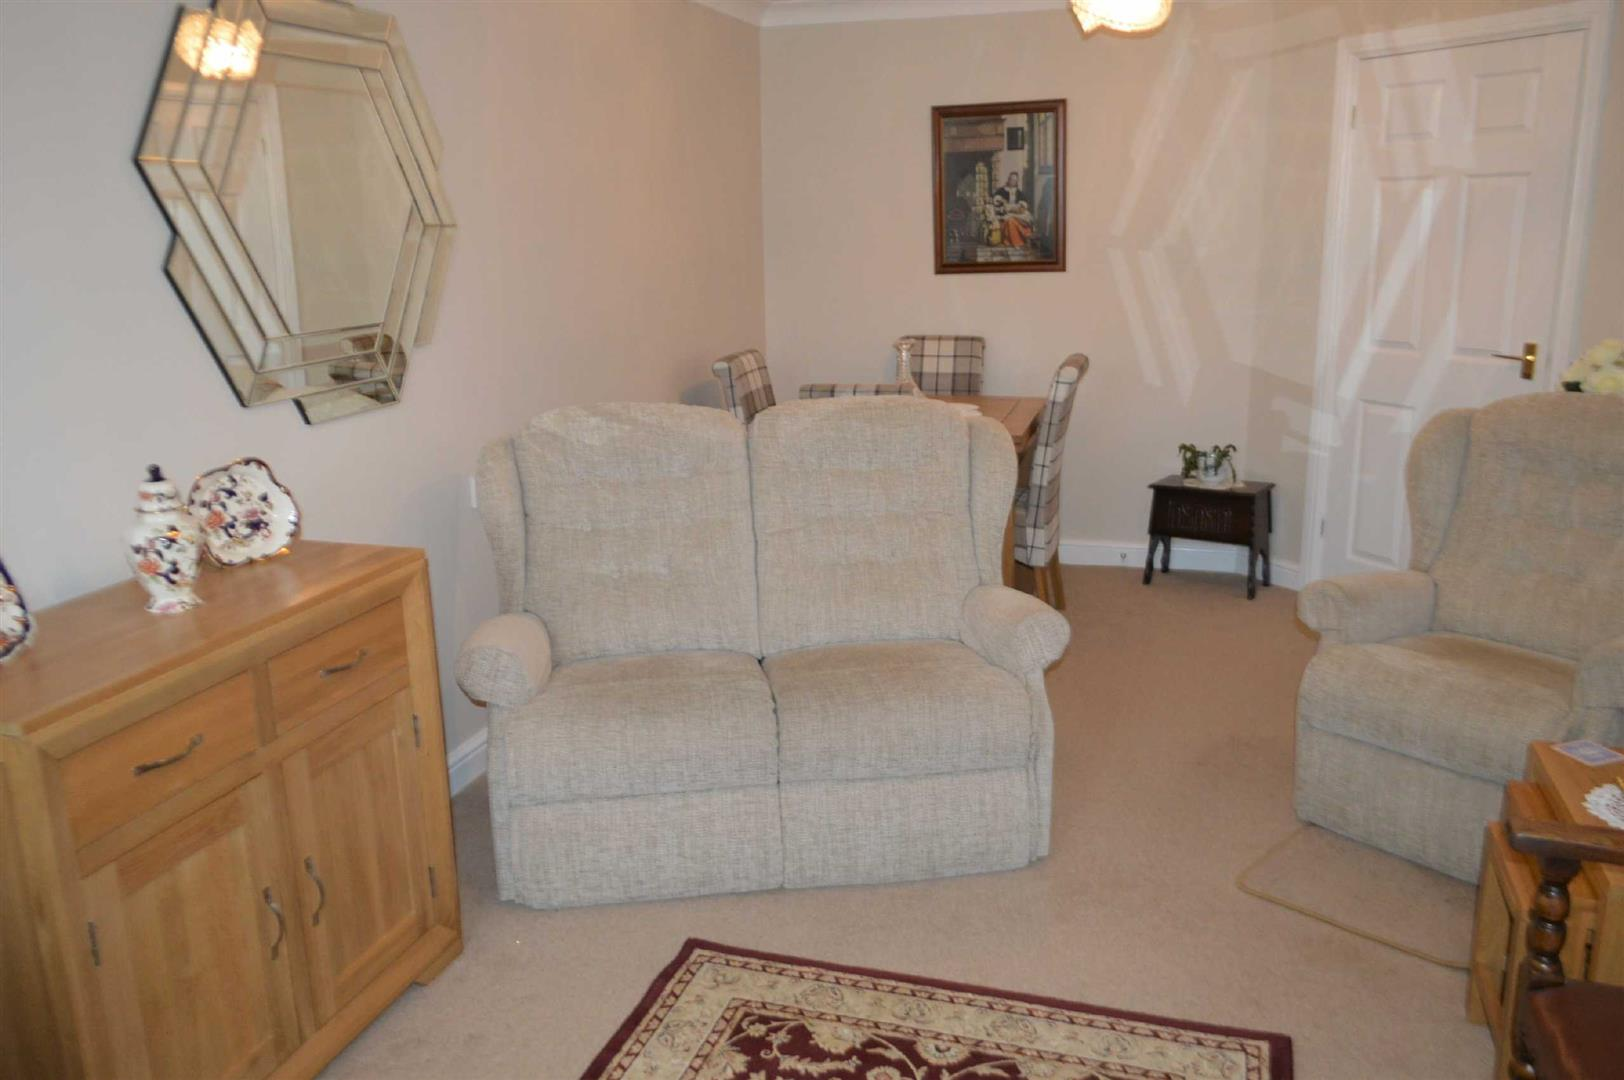 Maxime Court, Sketty, Swansea, SA2 9FB